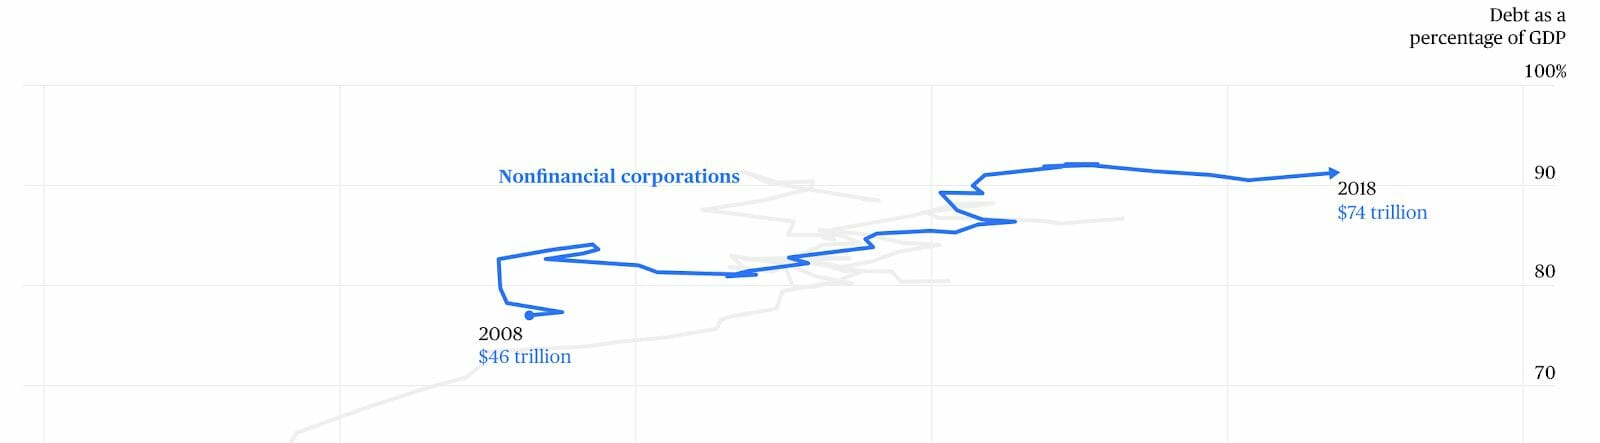 A graph showing non-financial corporations gaining $28 trillion in debt from 2008 to 2018.